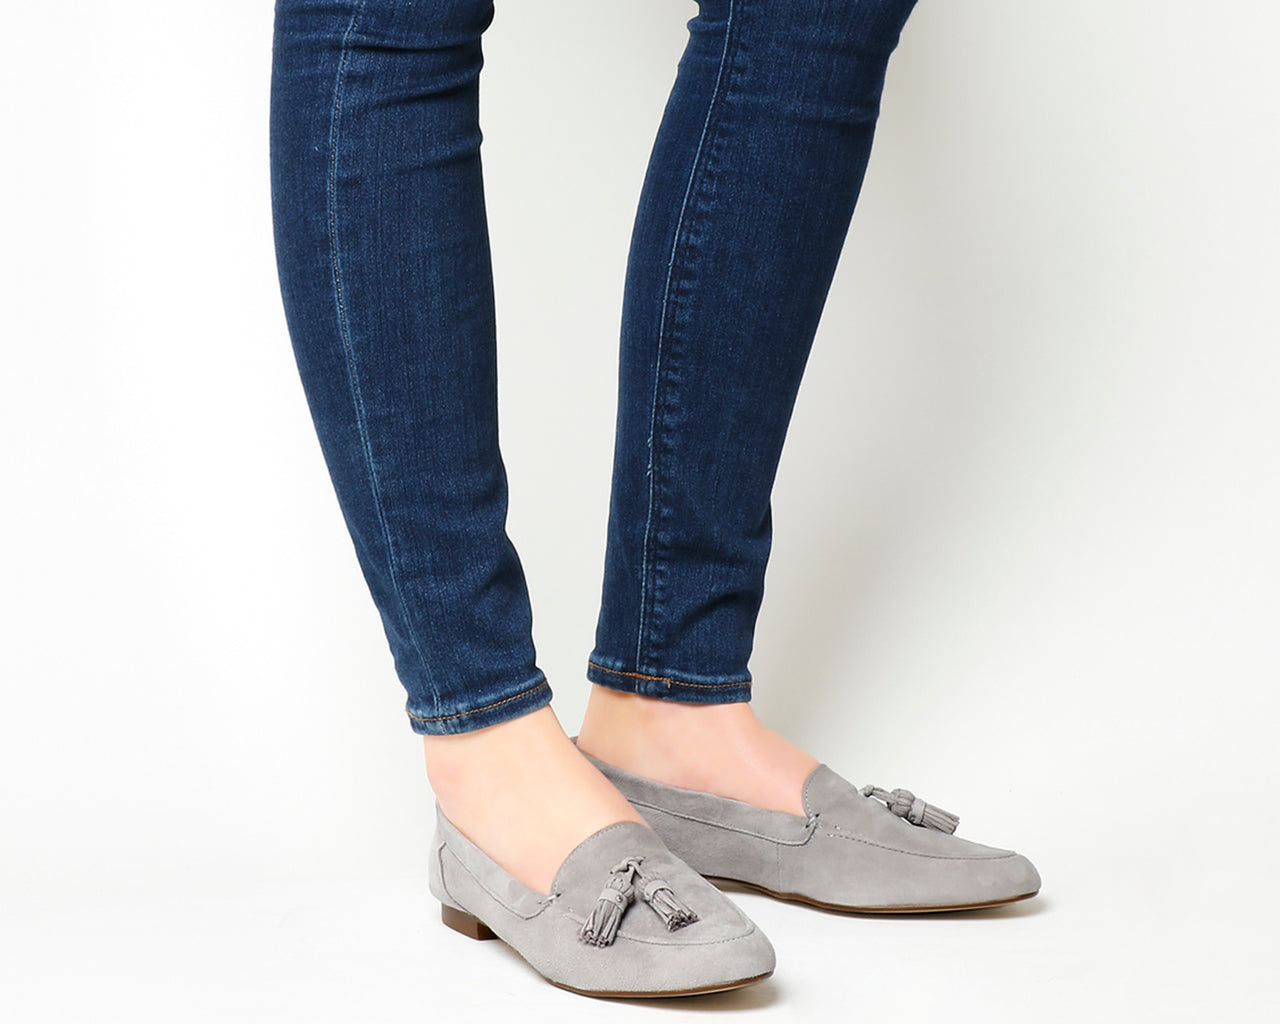 Womens Office Retro Tassel Loafer Grey Suede